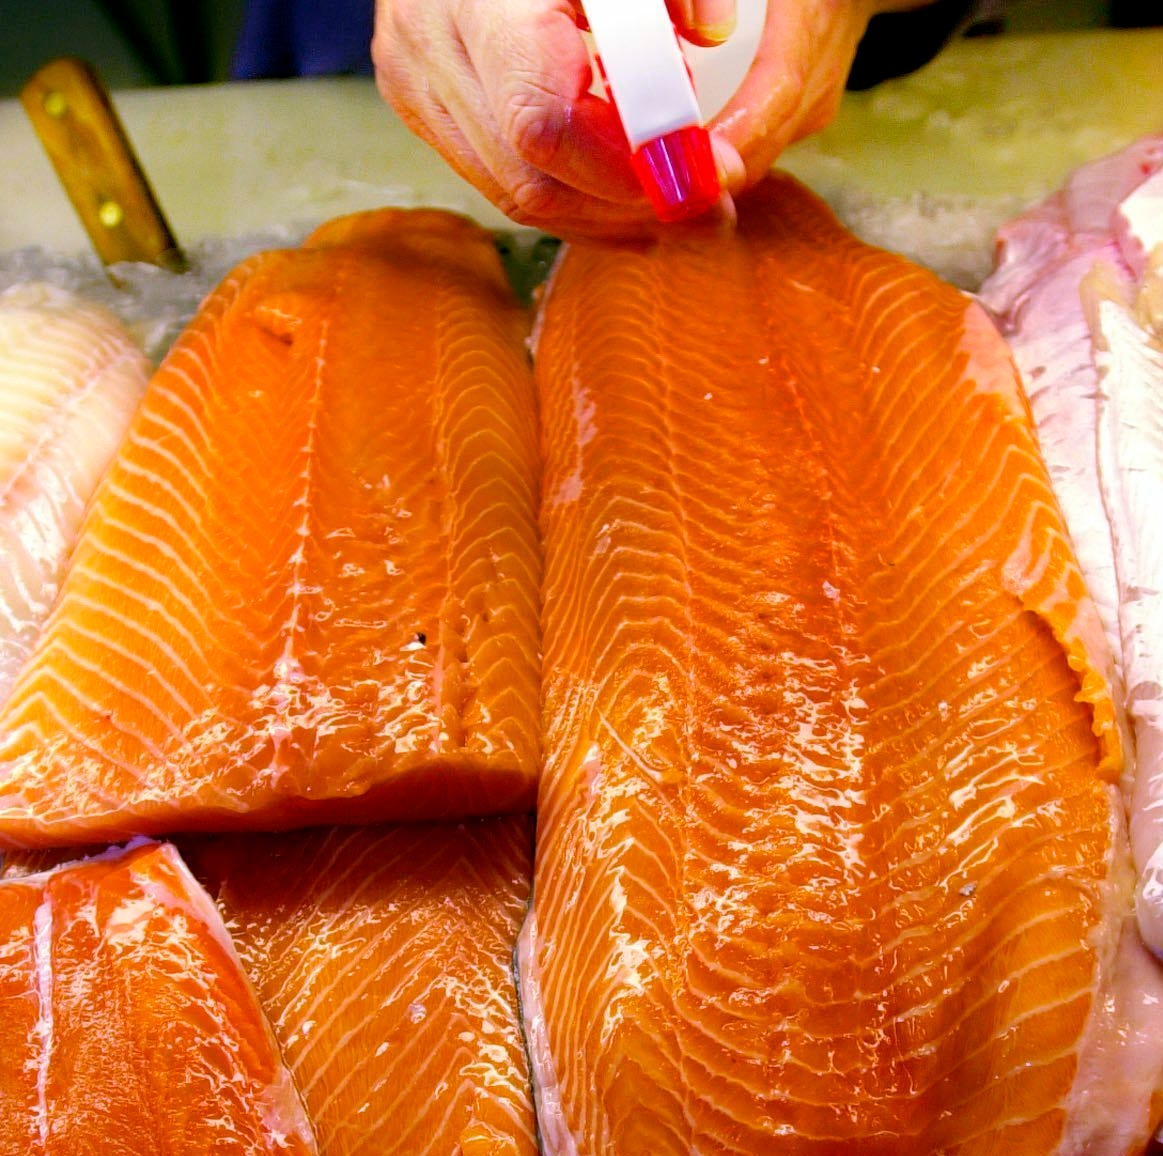 Fishy situation: Seafood fraud and mislabeling found at NY supermarkets